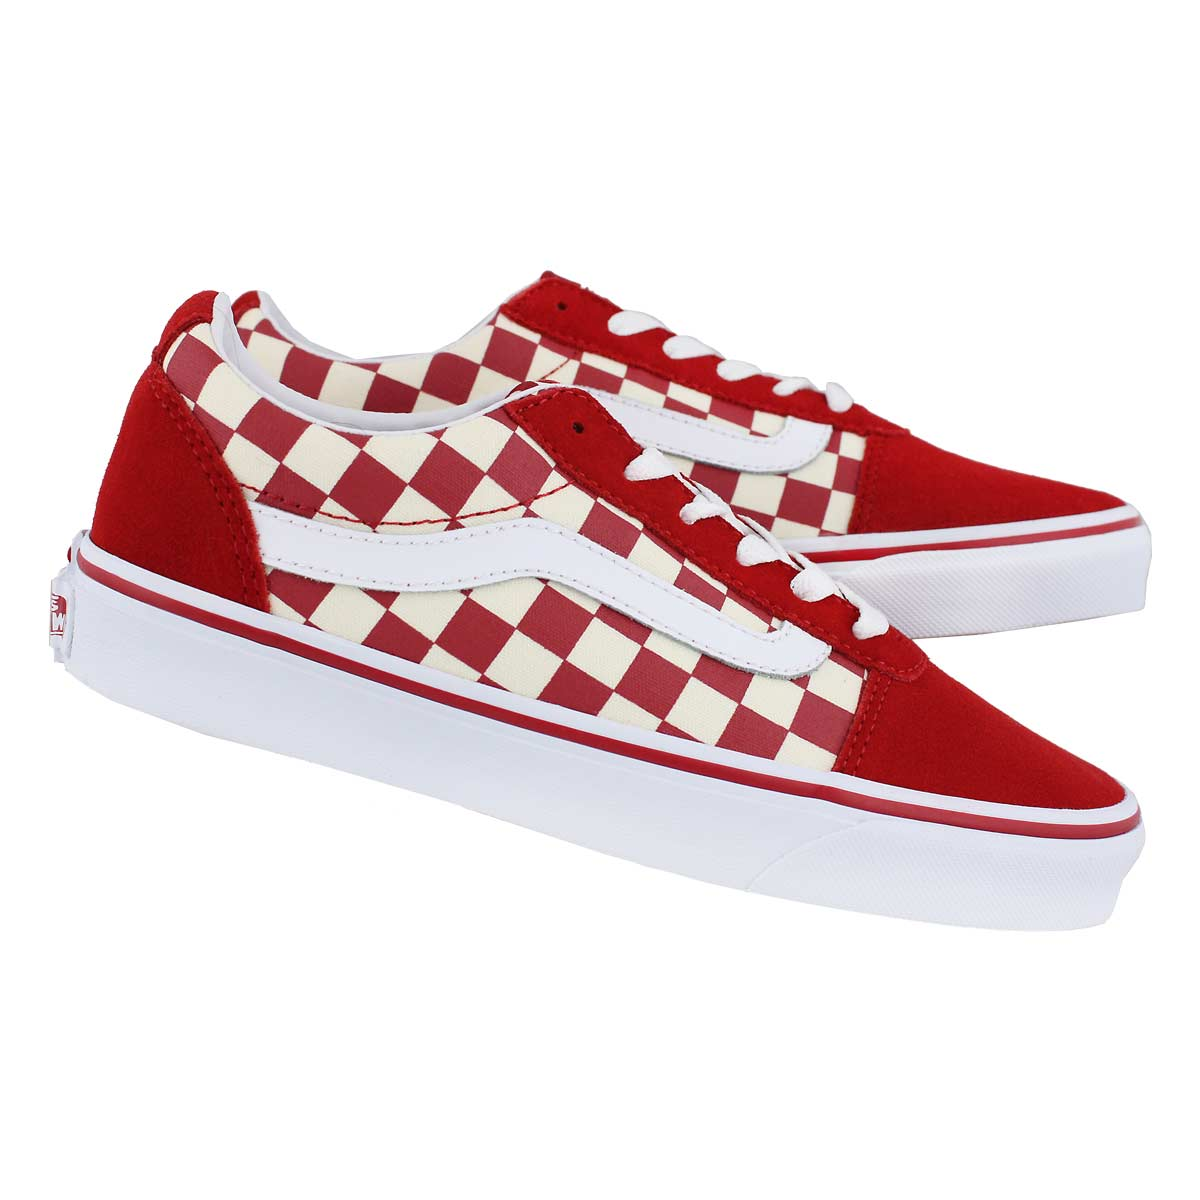 Lds Ward-Checker red/wht lace up snkr